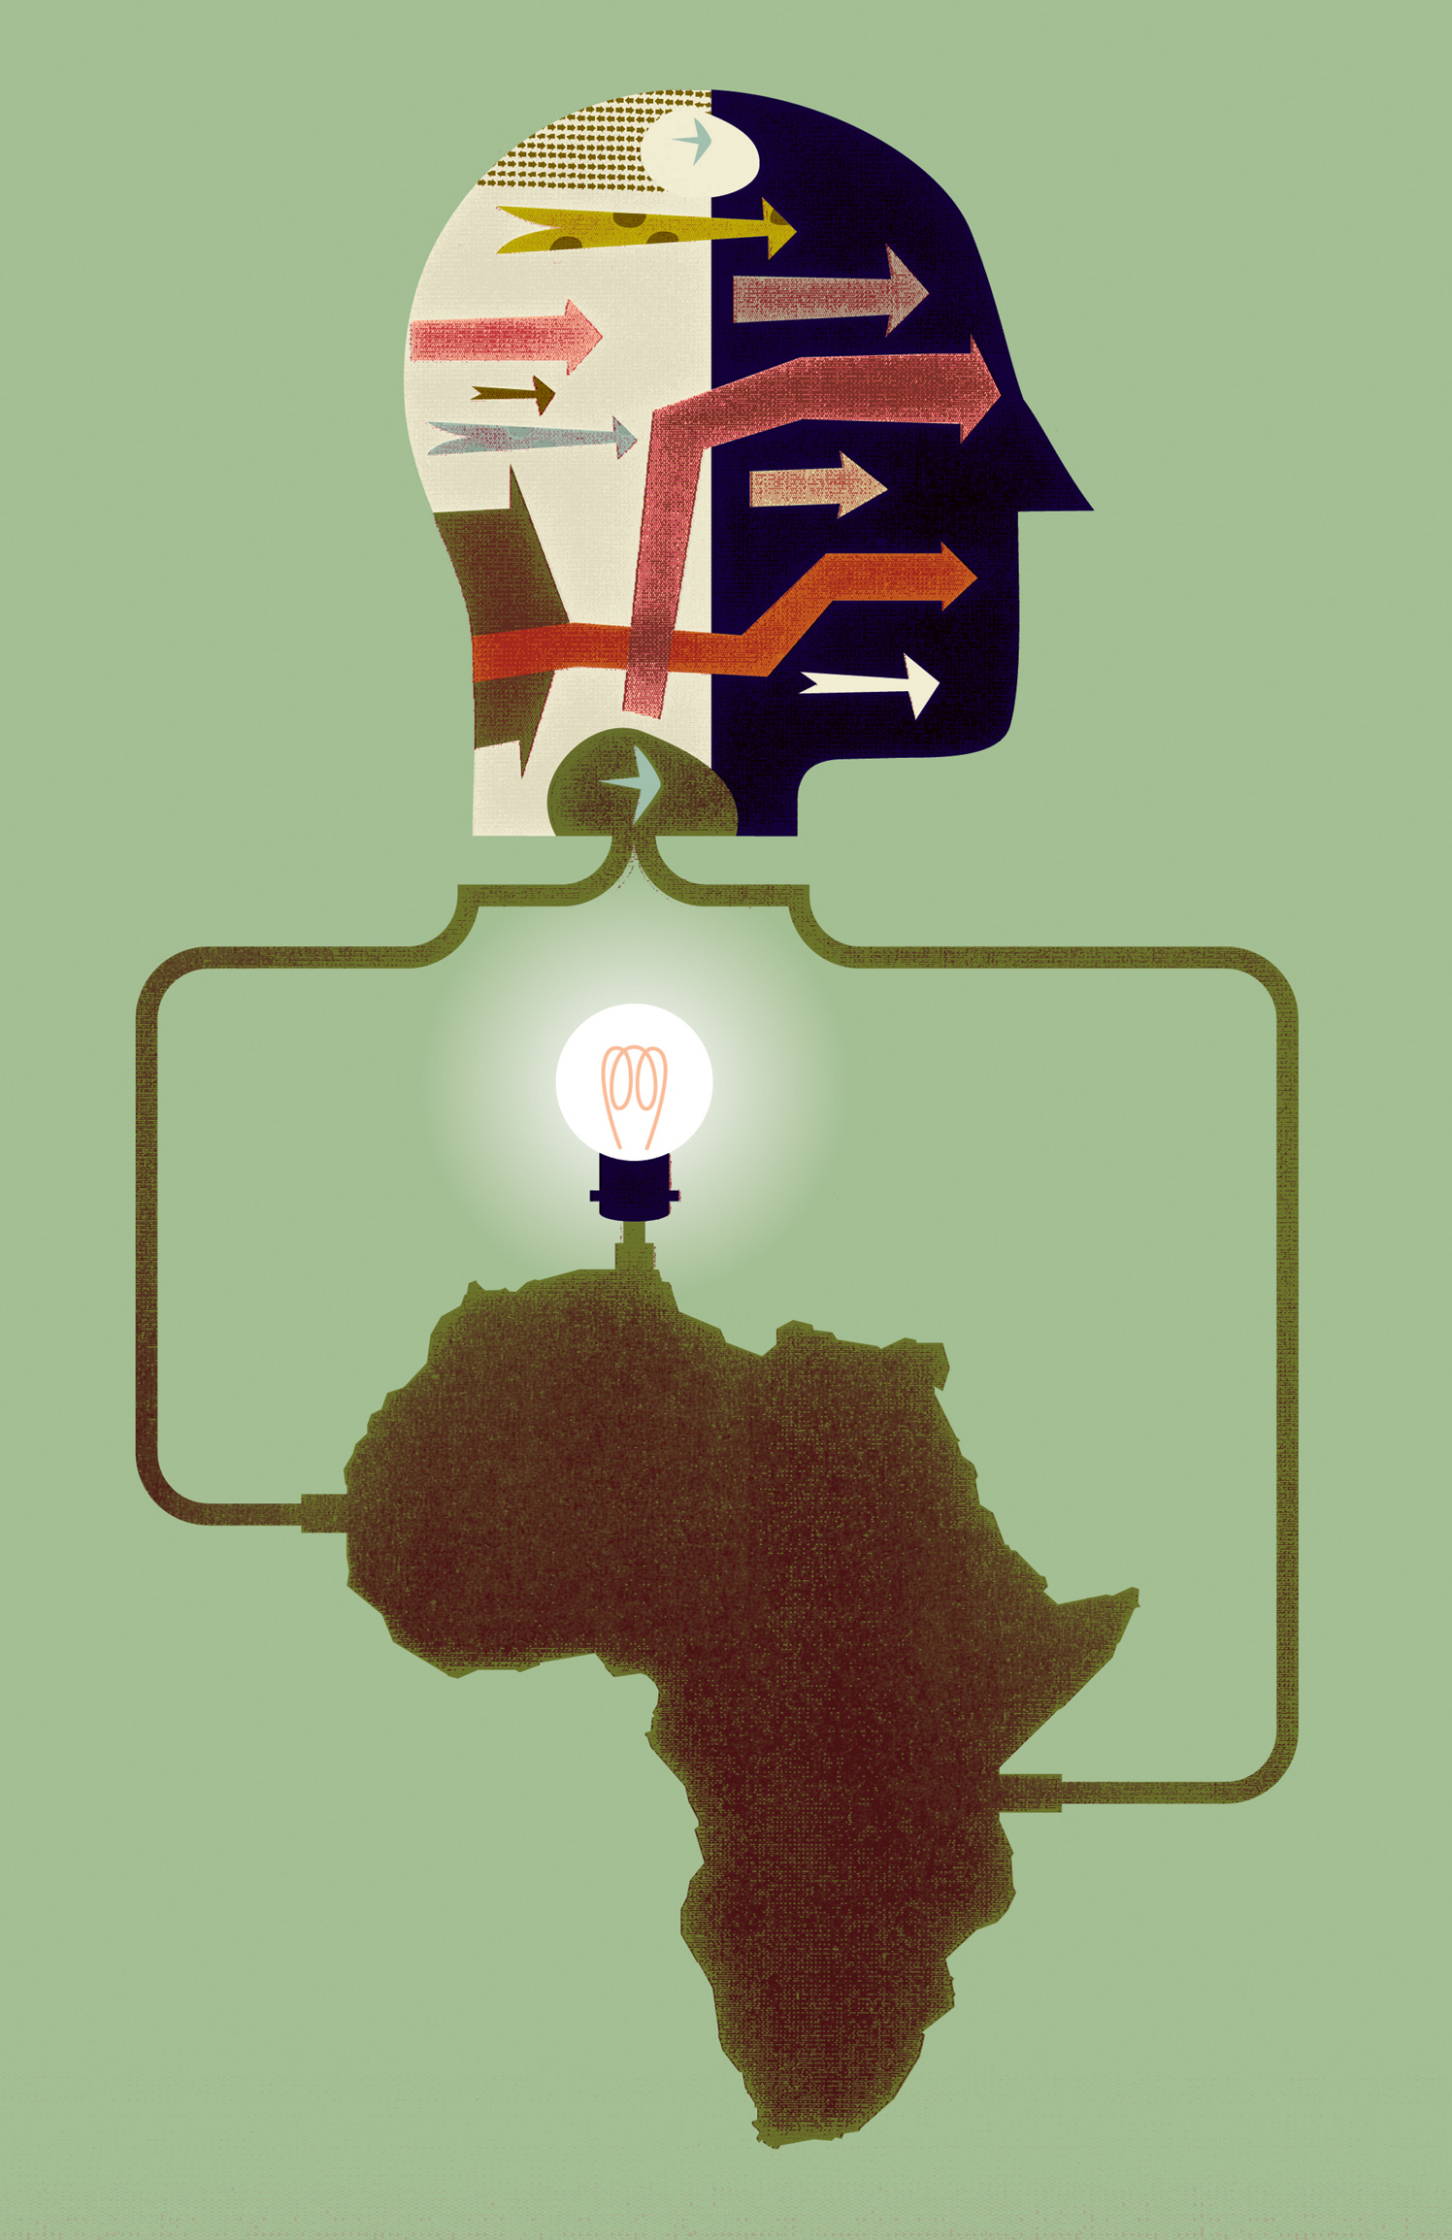 The Future for Africa